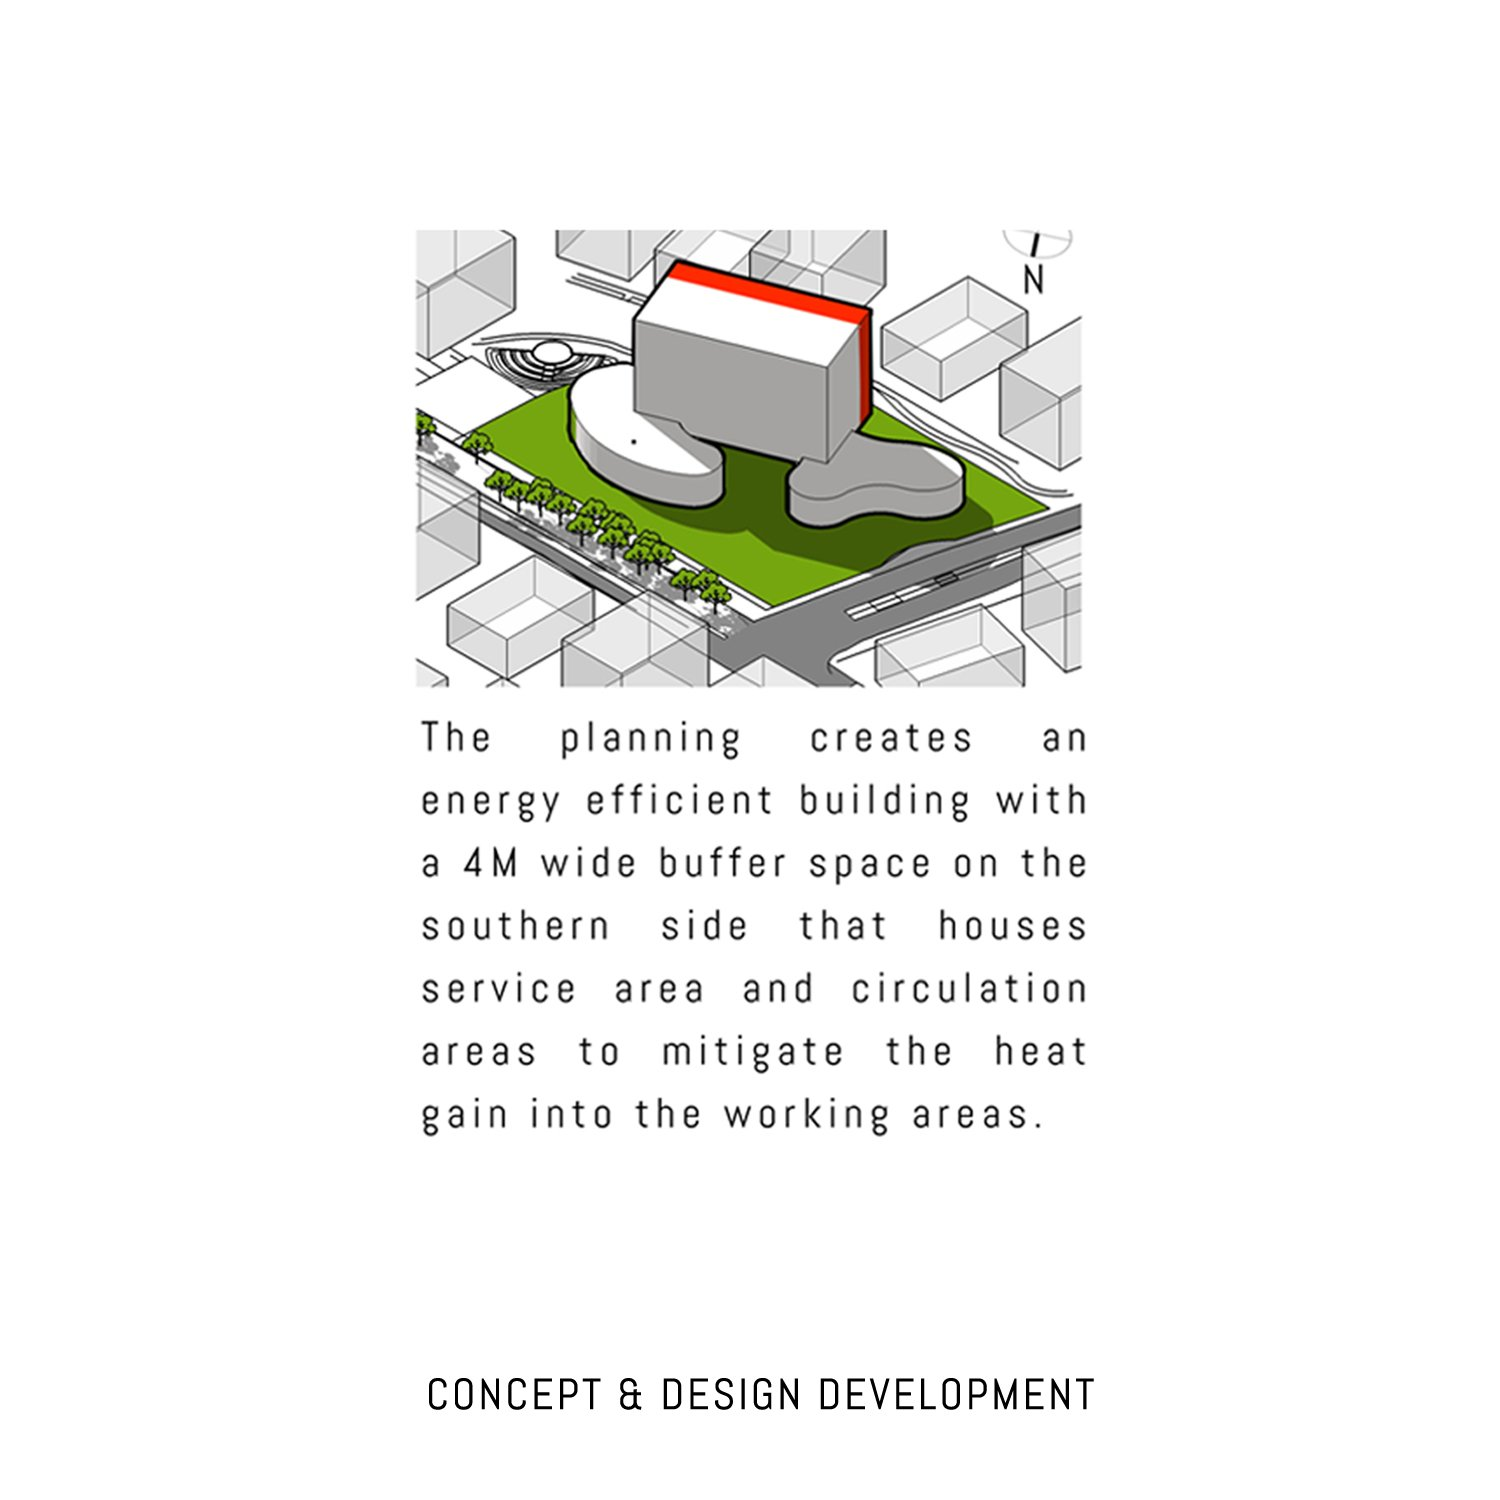 CONCEPT AND DESIGN DEVELOPEMENT sanjay puri architects}